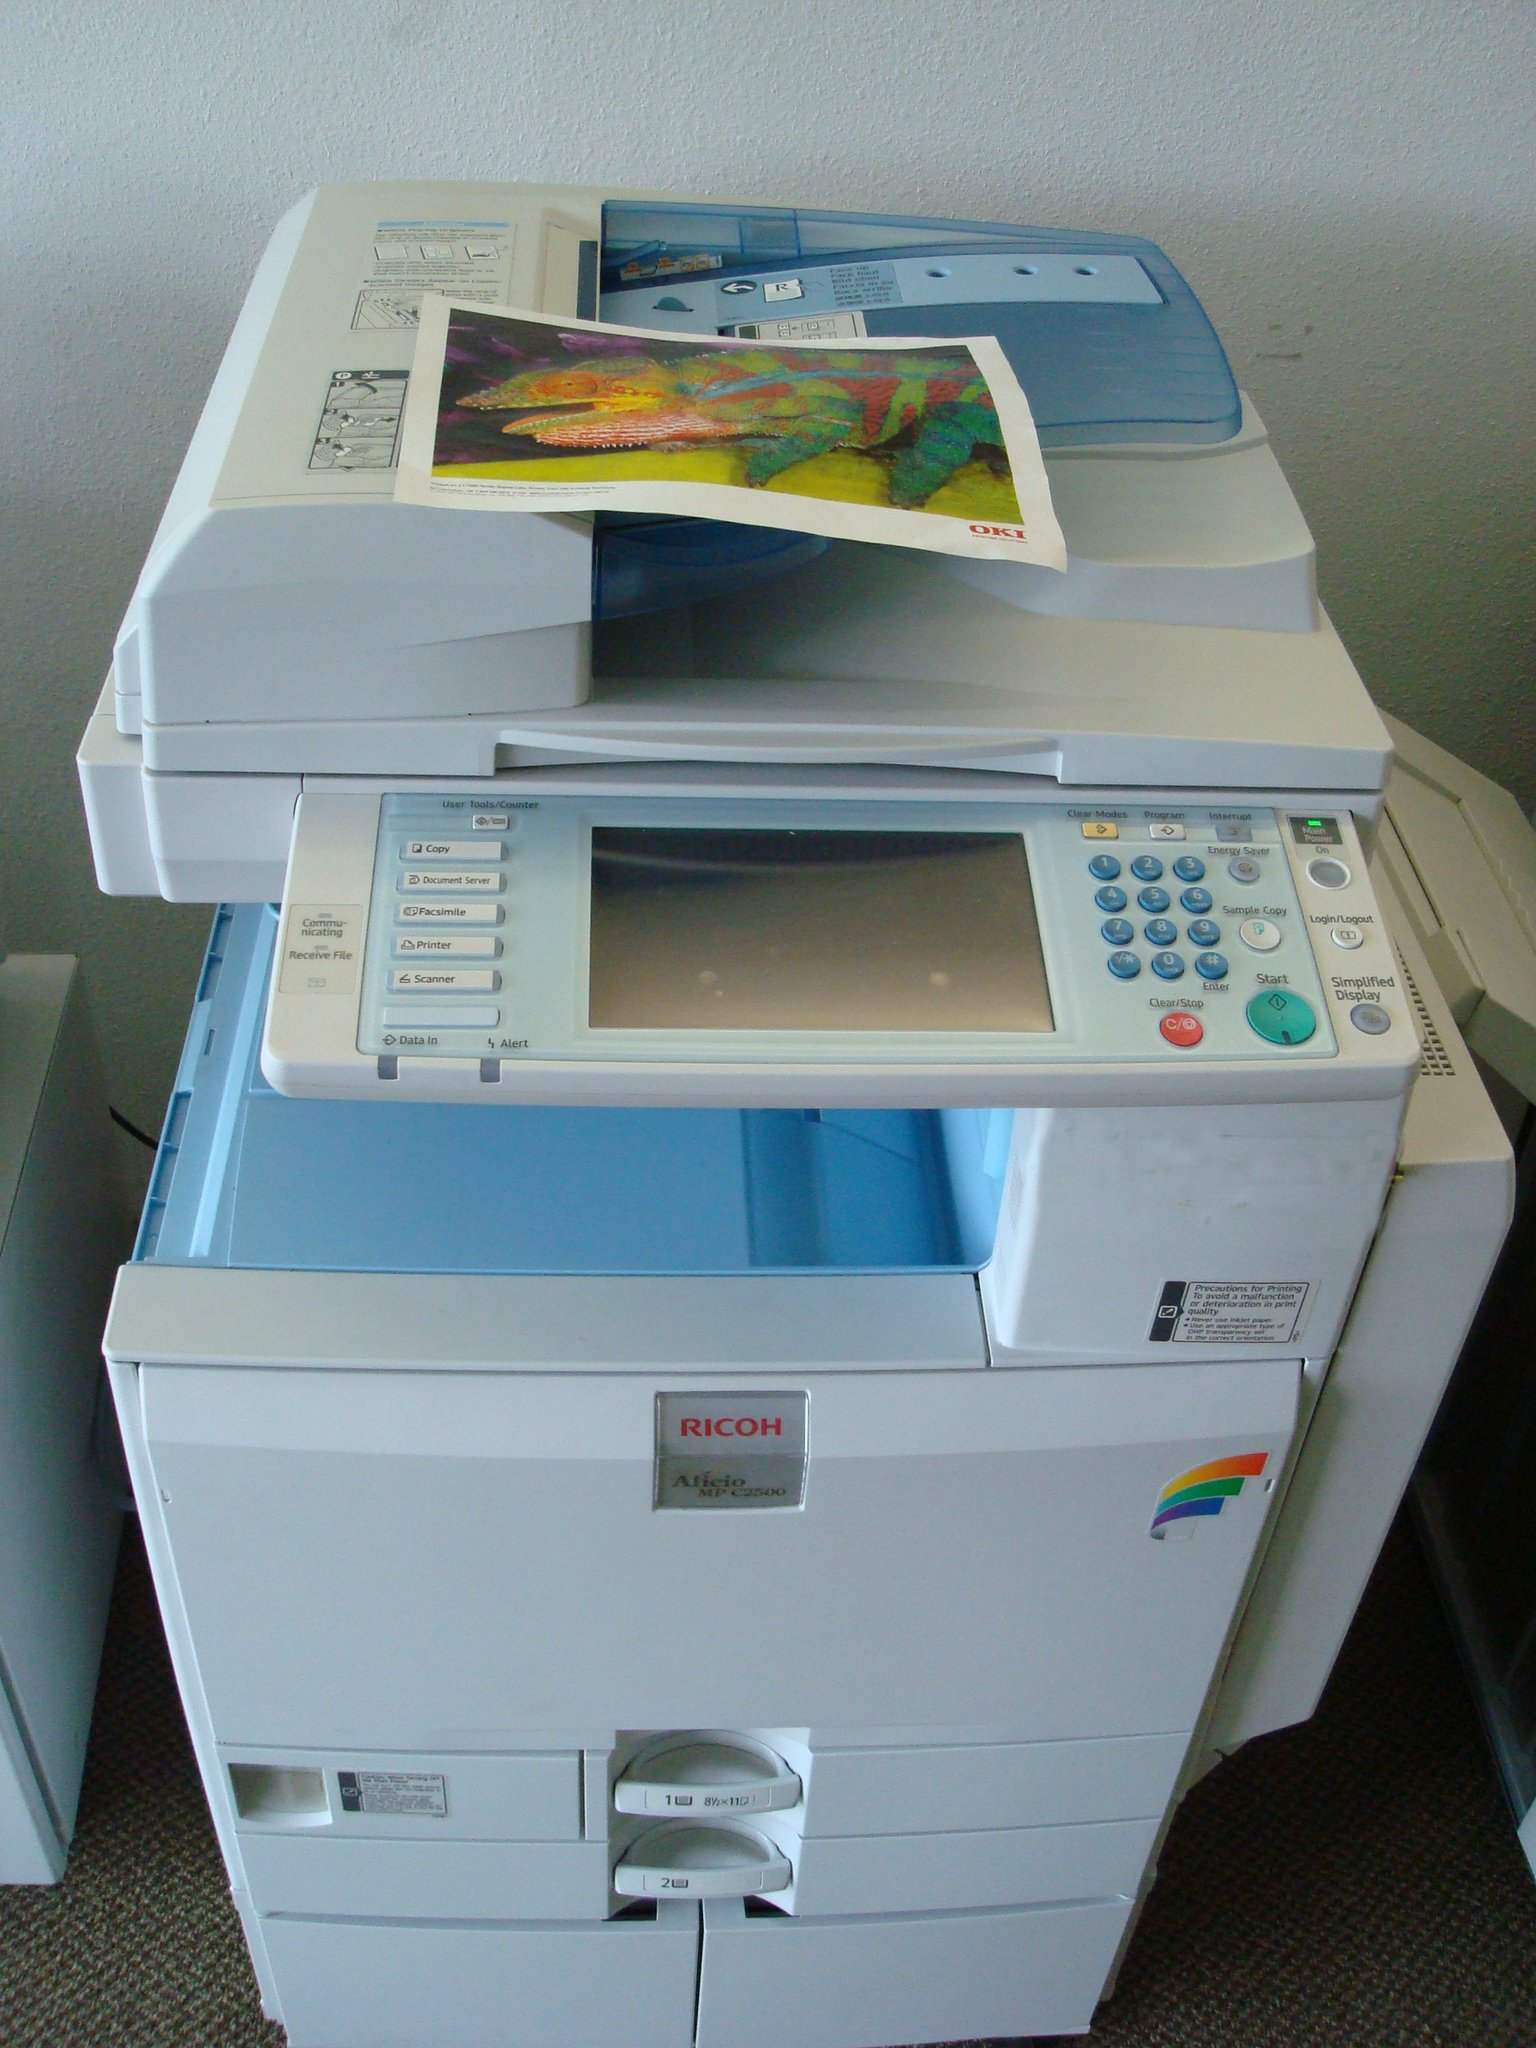 For colour copiers to buy or rent go to our home page where you